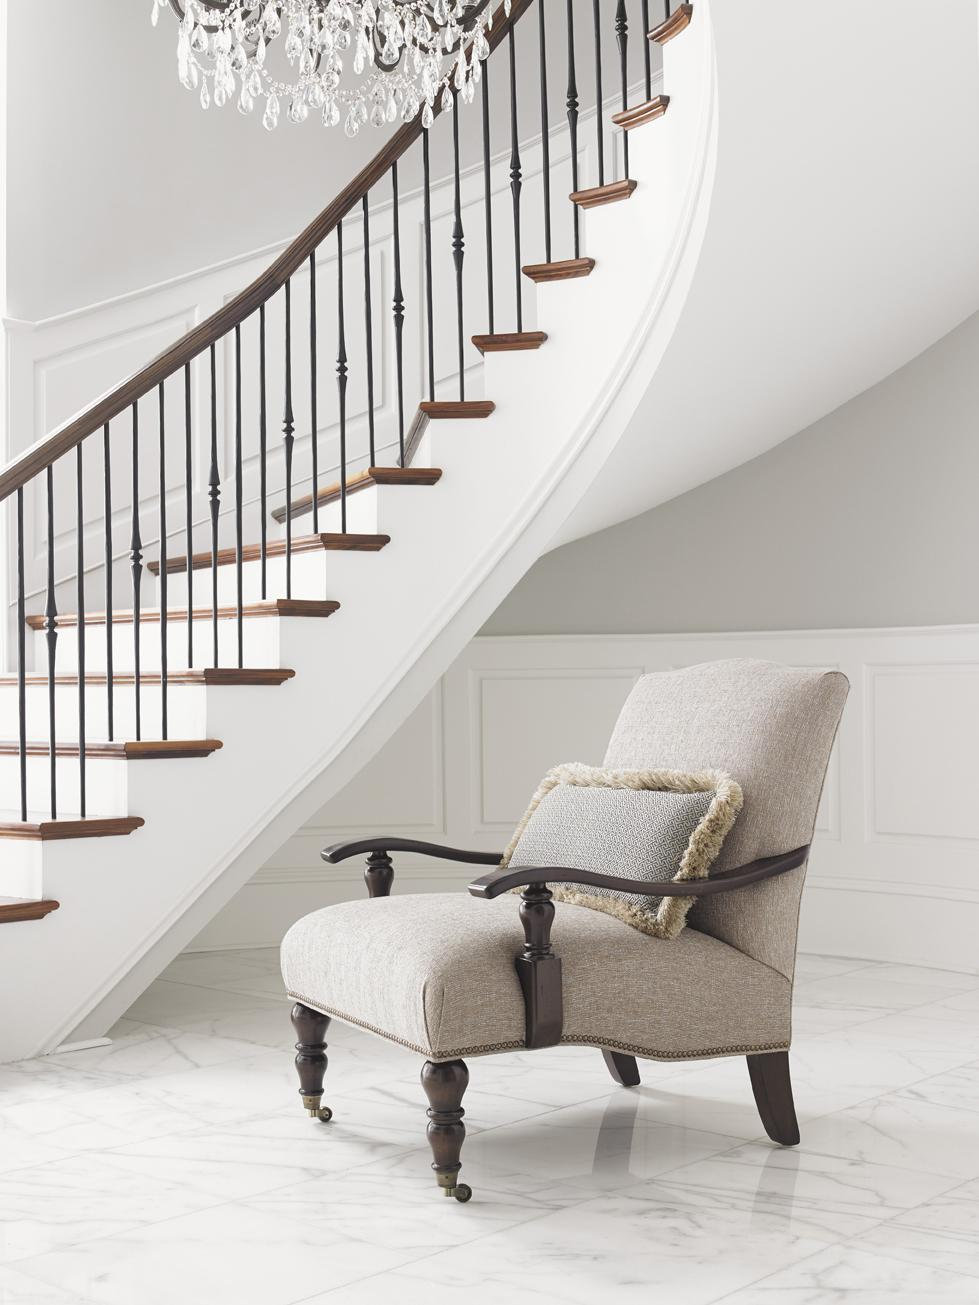 Tommy Bahama Home Landara San Carlos Chair With Exposed Wood Arms And Casters Reeds Furniture